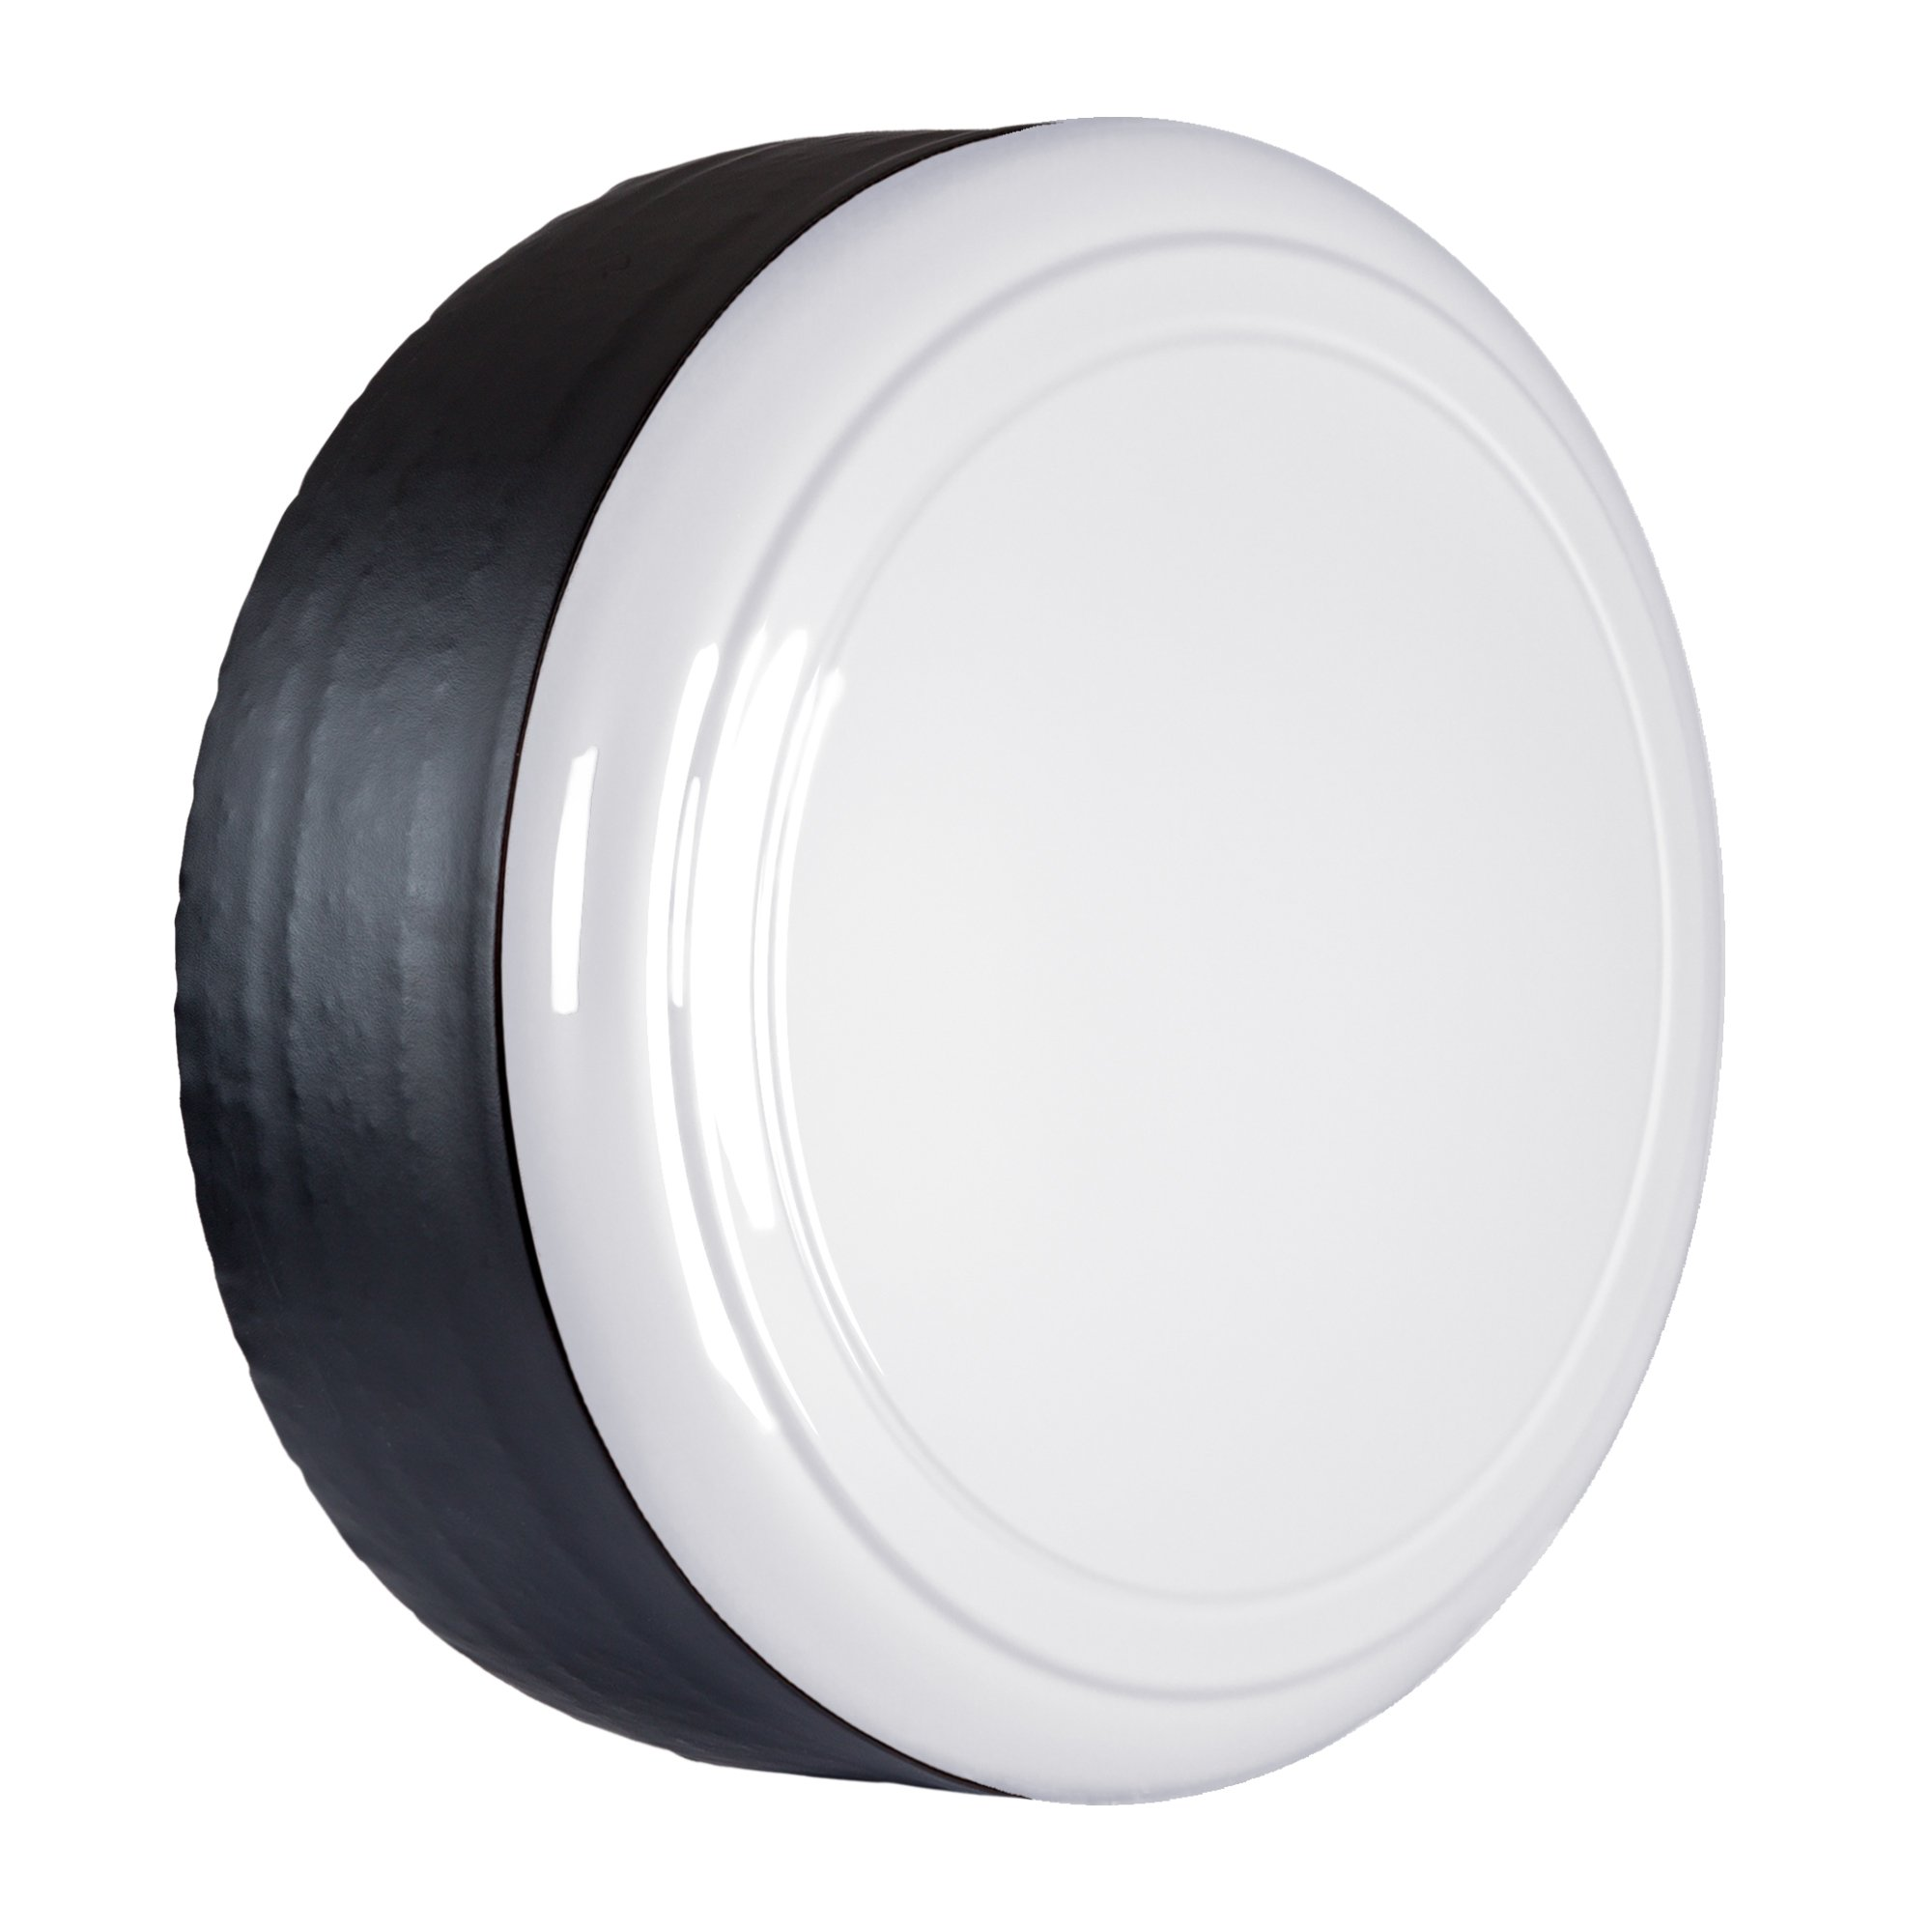 06-12 Toyota RAV4 - 28'' Color Matched Rigid Tire Cover (Plastic Face & Vinyl Band) - Super White by Boomerang (Image #3)